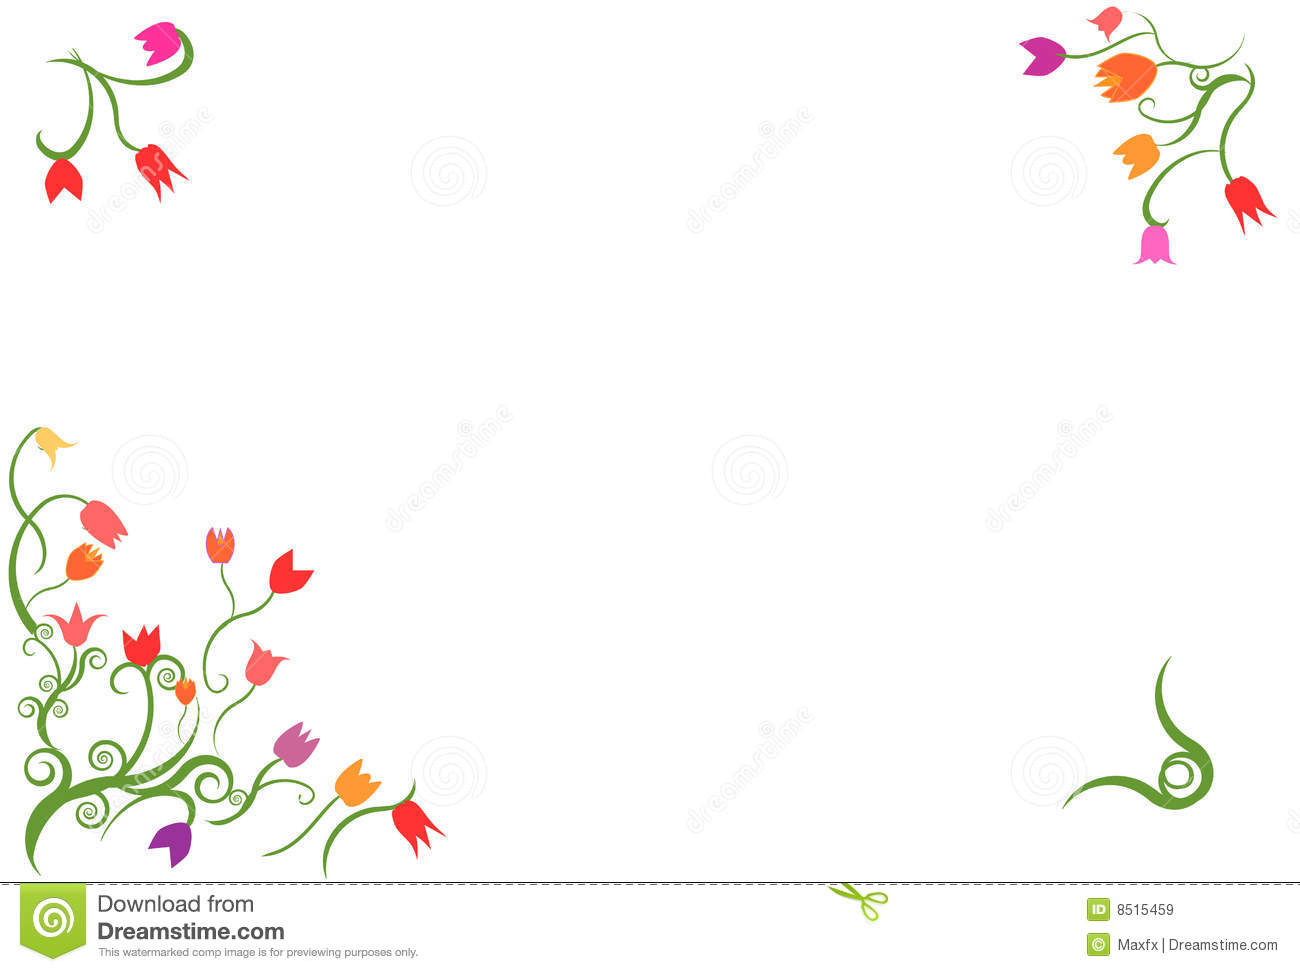 Tulip border frame vector stock vector. Illustration of ...Tulips Page Borders Clipart Free